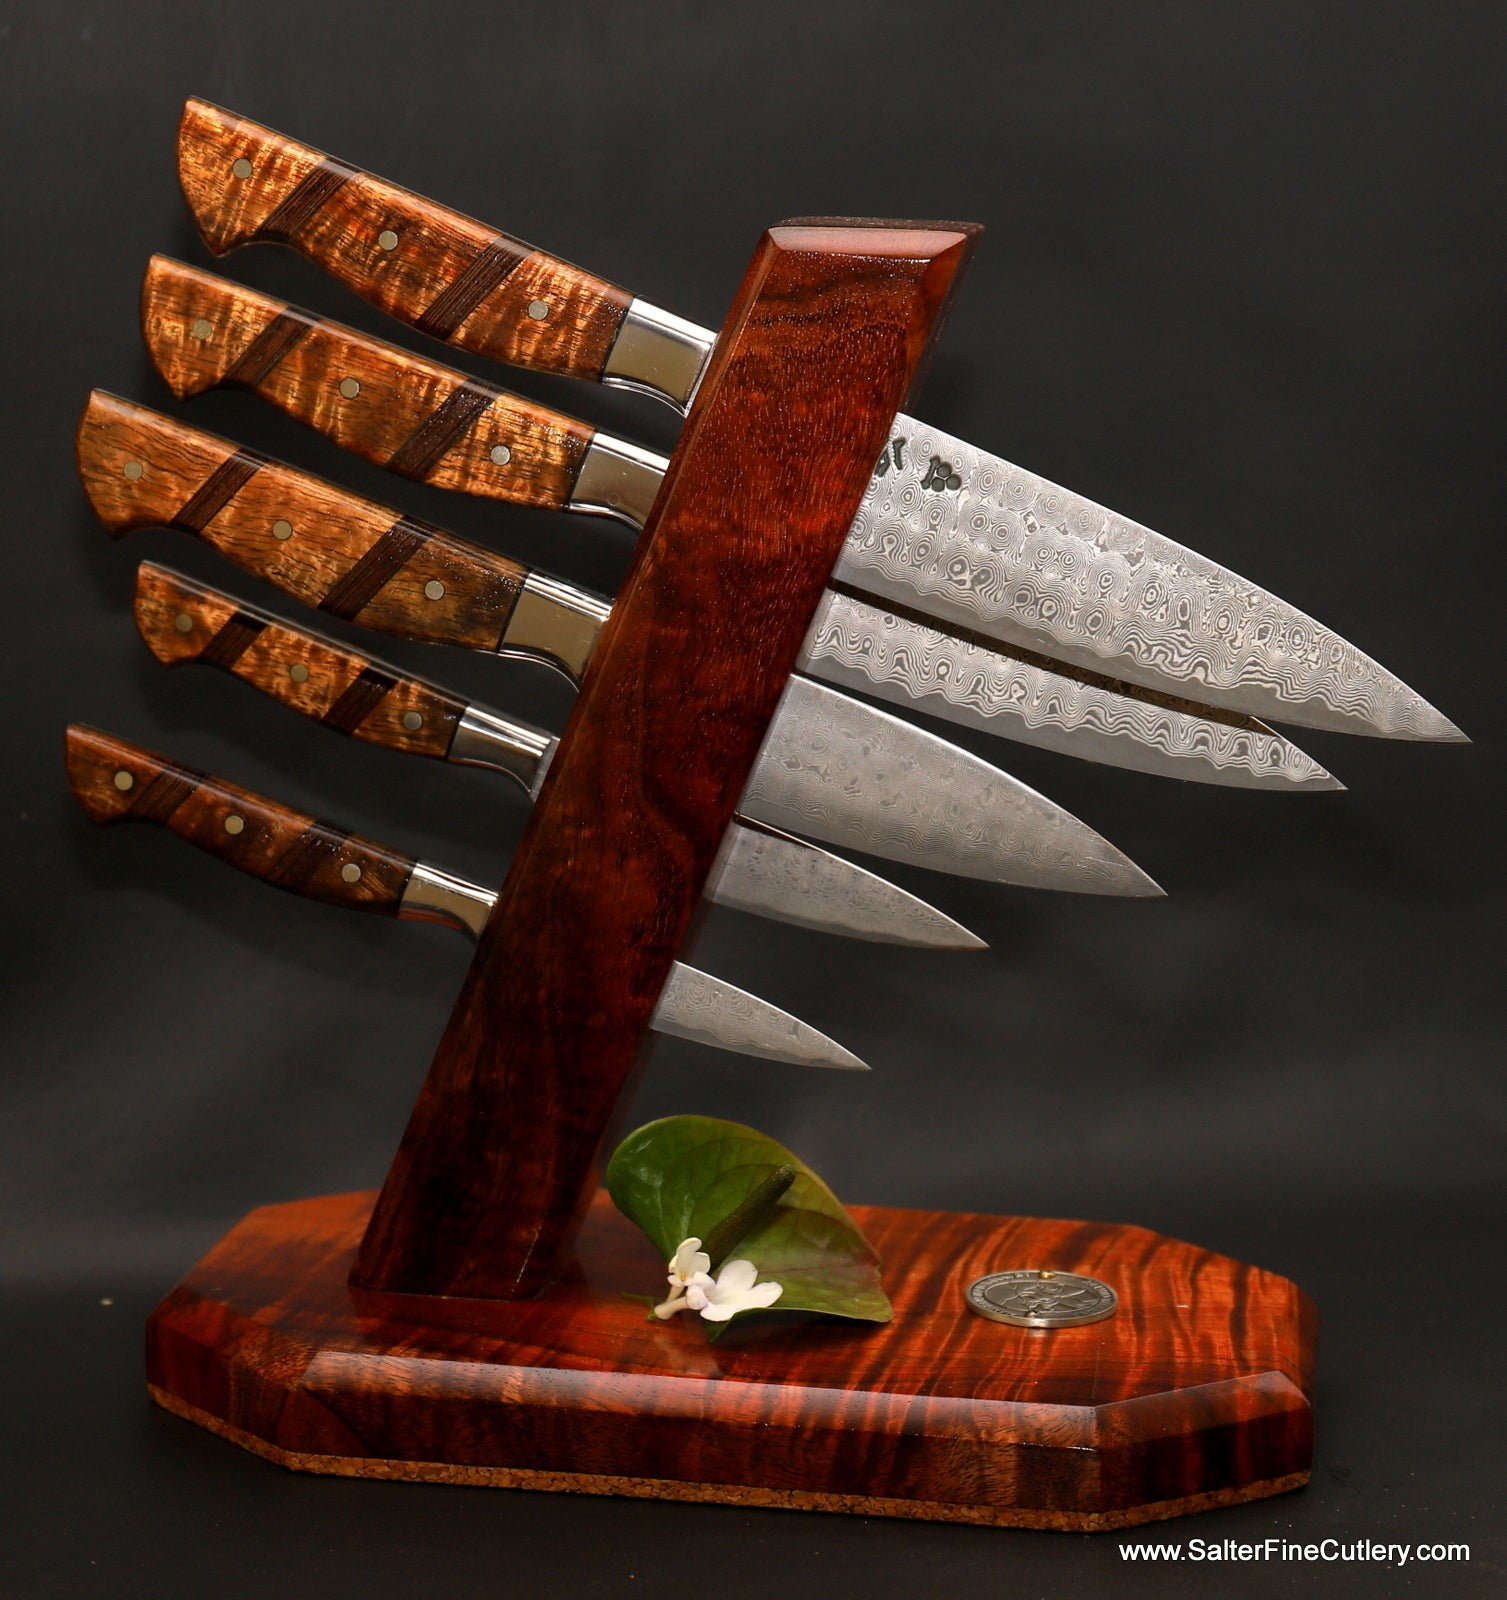 Custom handforged luxury chef knife set in stand handmade in Hawaii by Salter Fine Cutlery